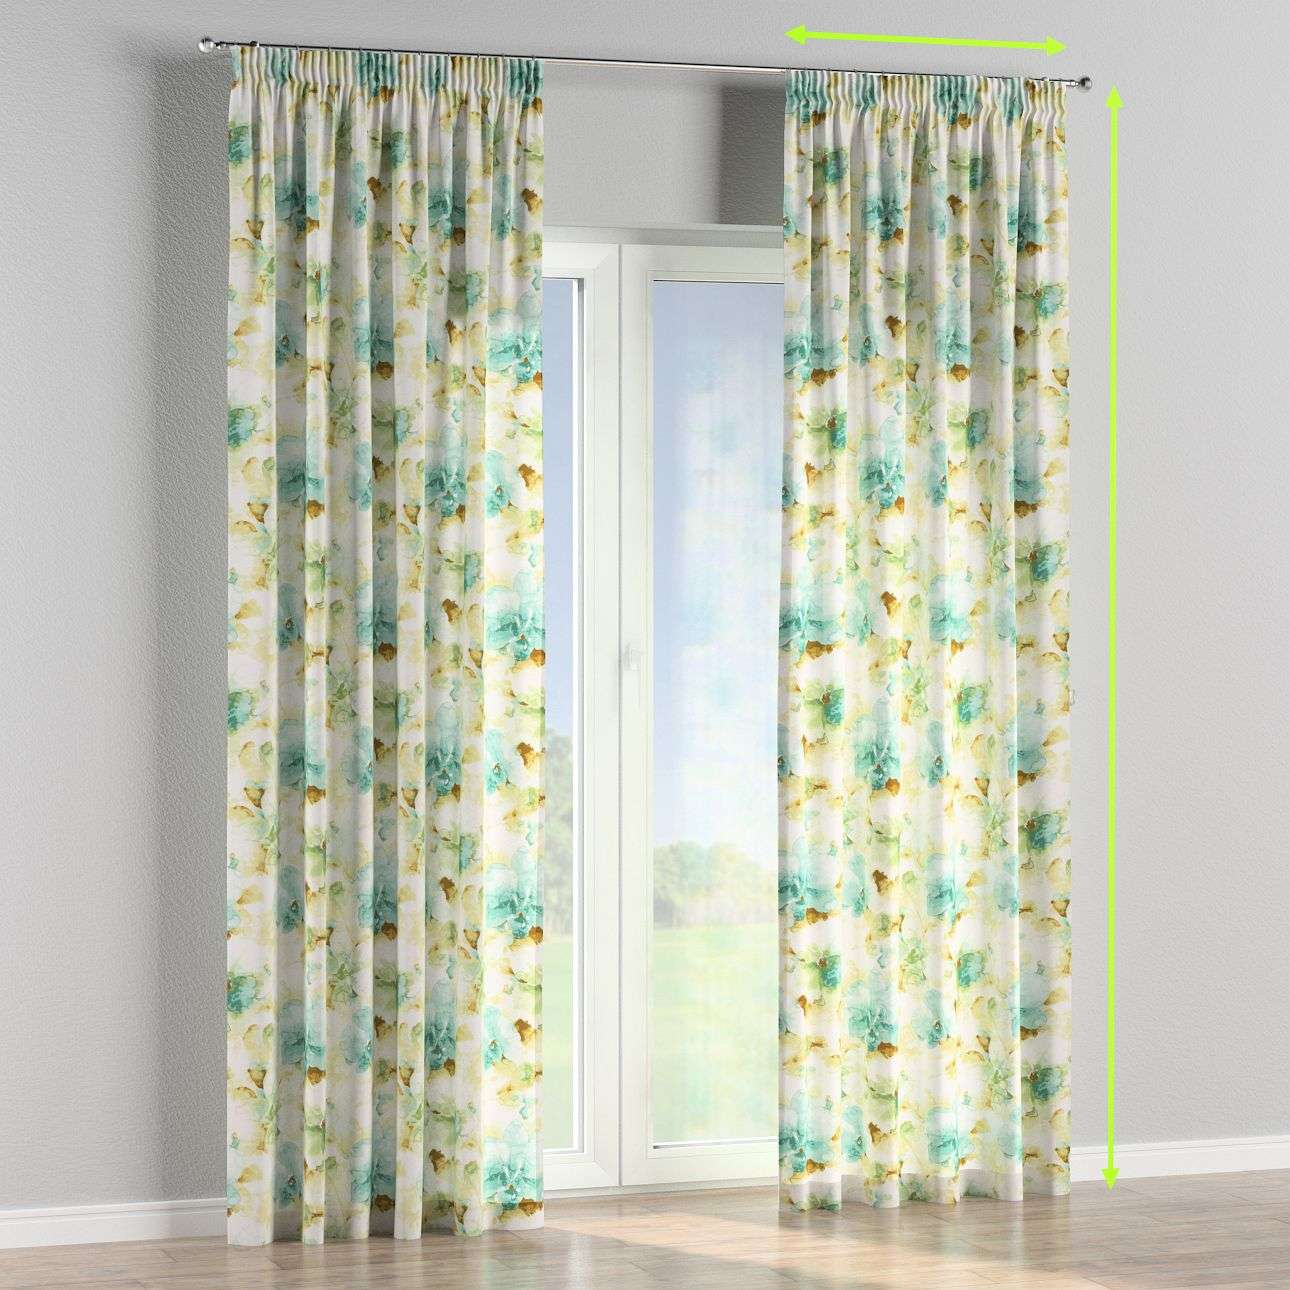 Pencil pleat lined curtains in collection Acapulco, fabric: 141-35